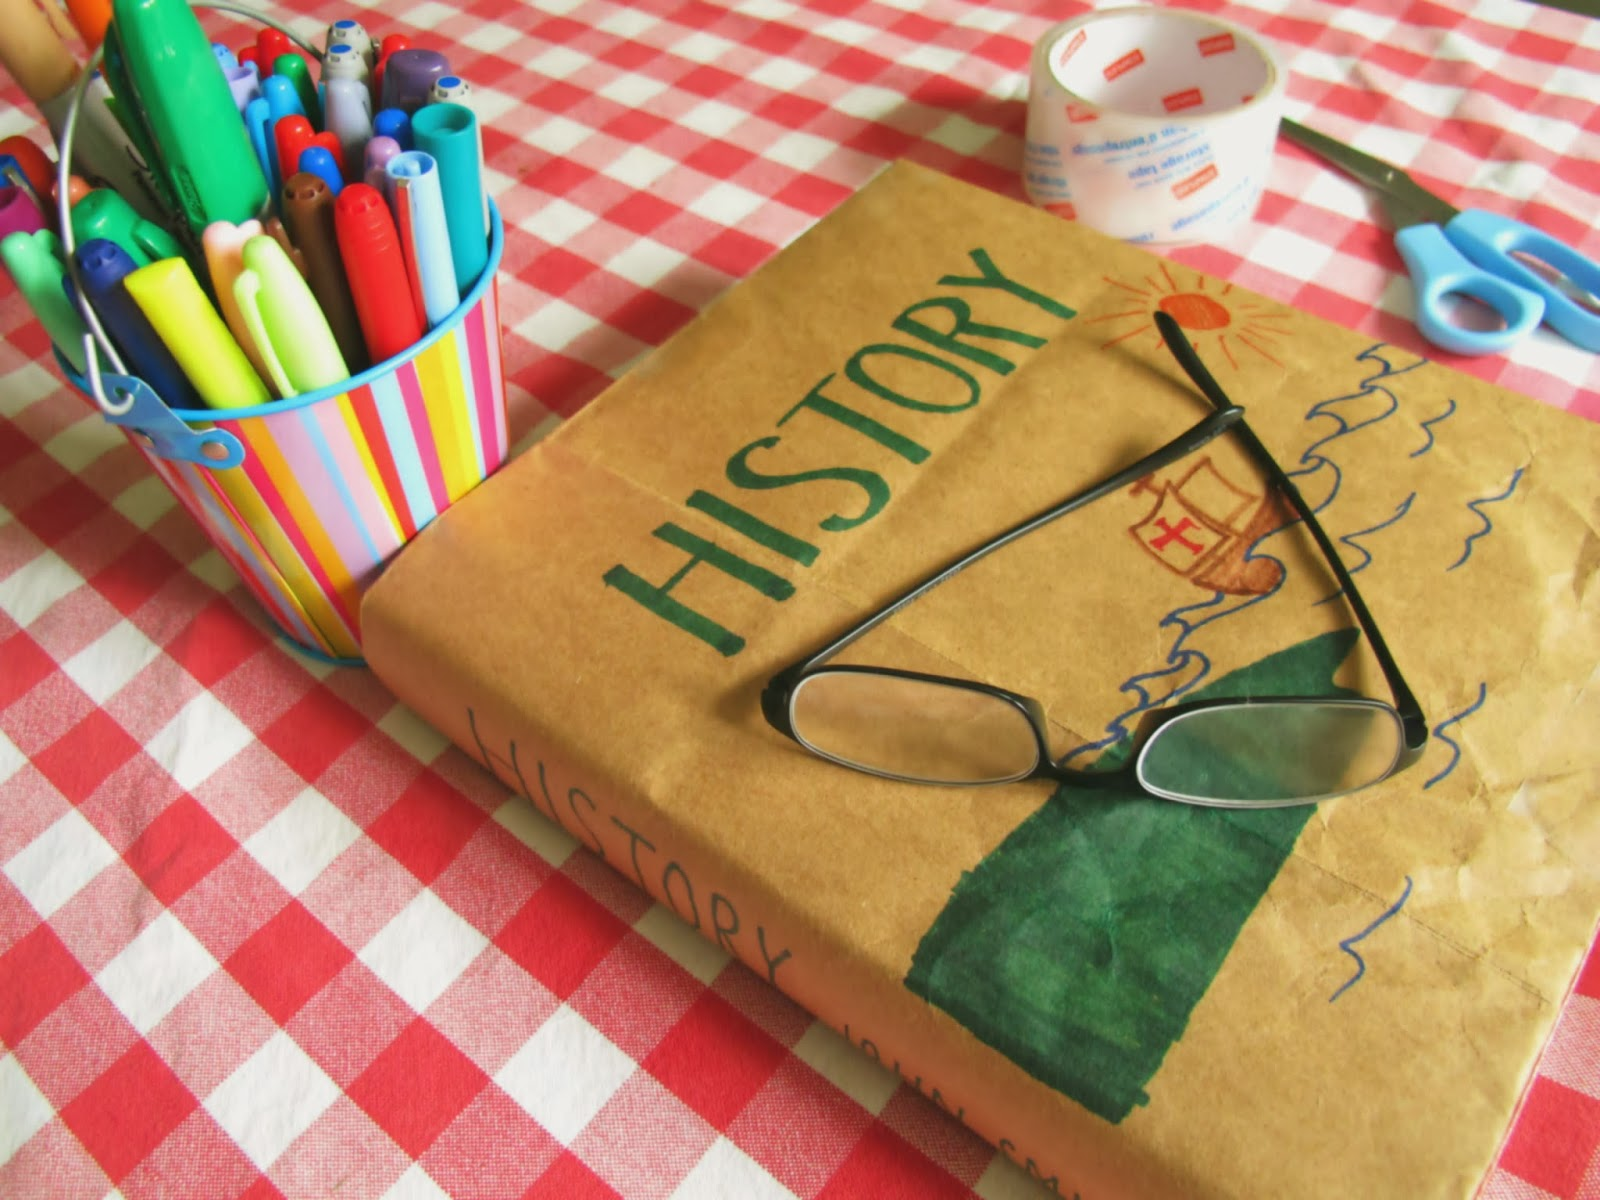 How To Make A Book Cover From Grocery Bag : Diy make textbook covers out of paper grocery bags eureka